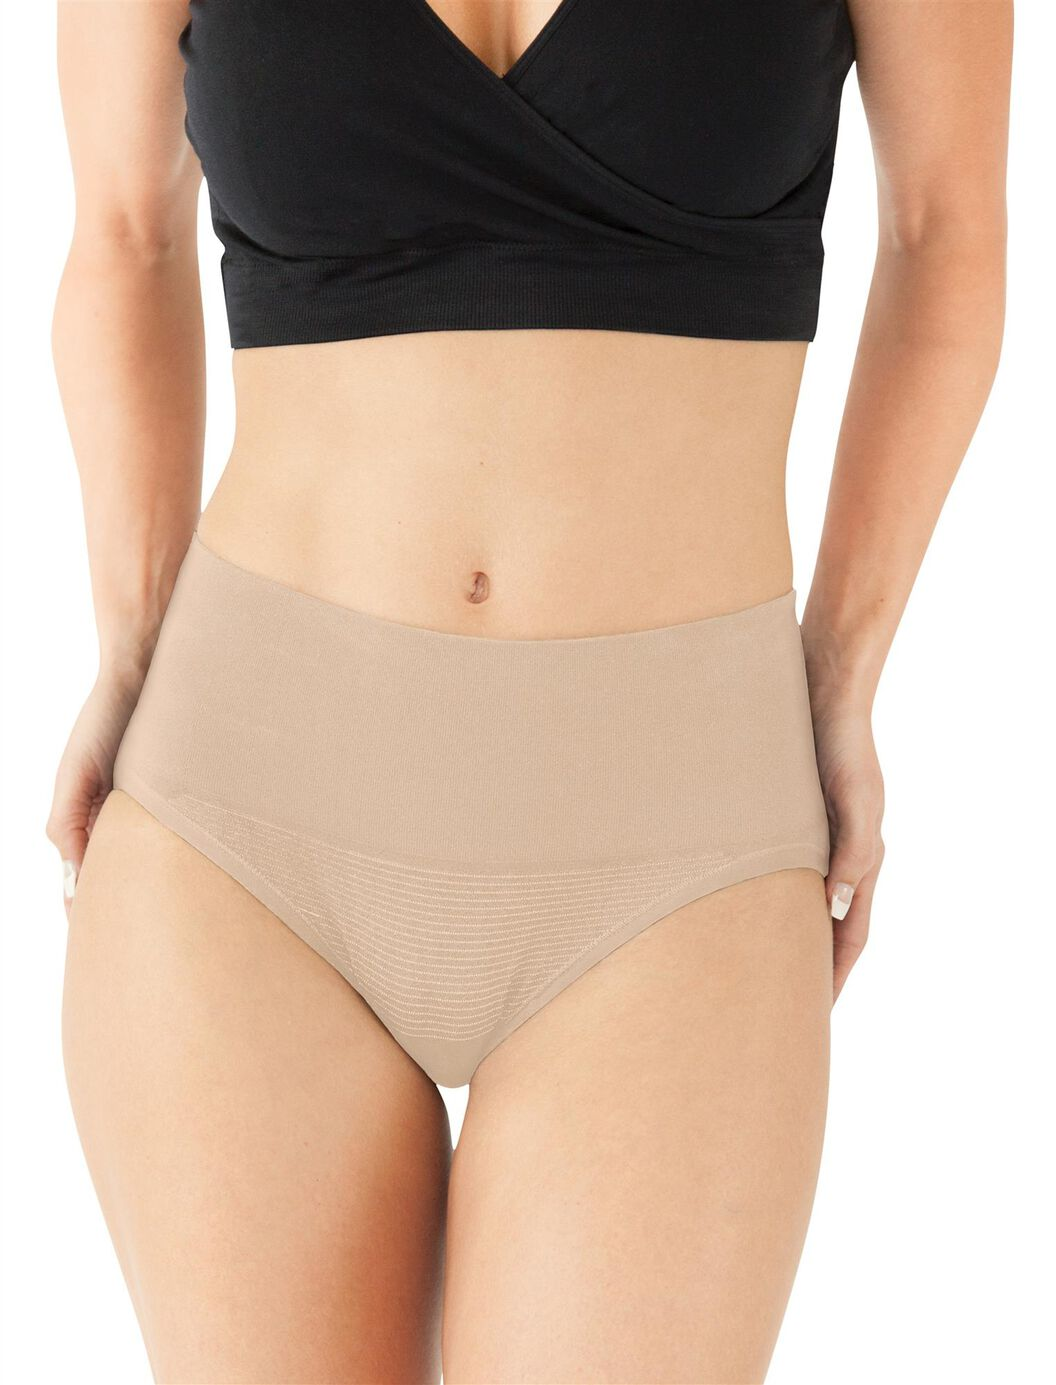 Belly Bandit C-Section Recovery Panty (Single) at Motherhood Maternity in Victor, NY | Tuggl